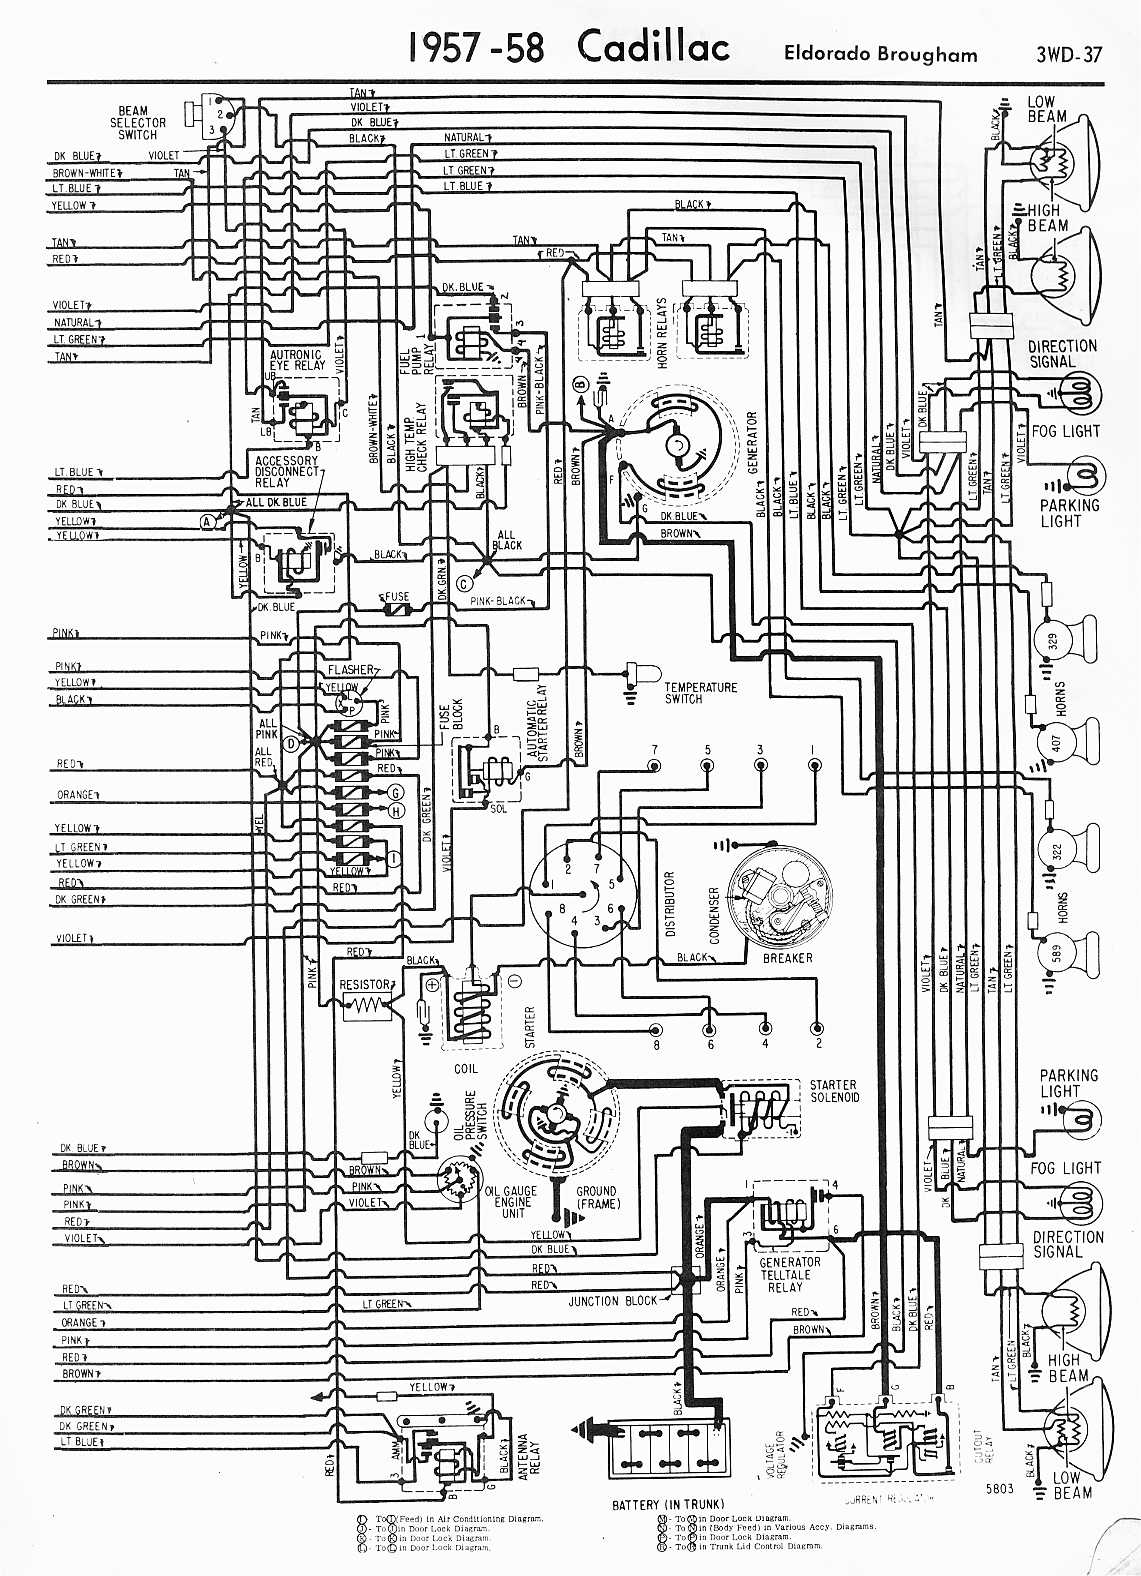 Wondrous Wiring Diagram For 1992 Cadillac Fleetwood Wiring Diagram Tutorial Wiring Cloud Nuvitbieswglorg